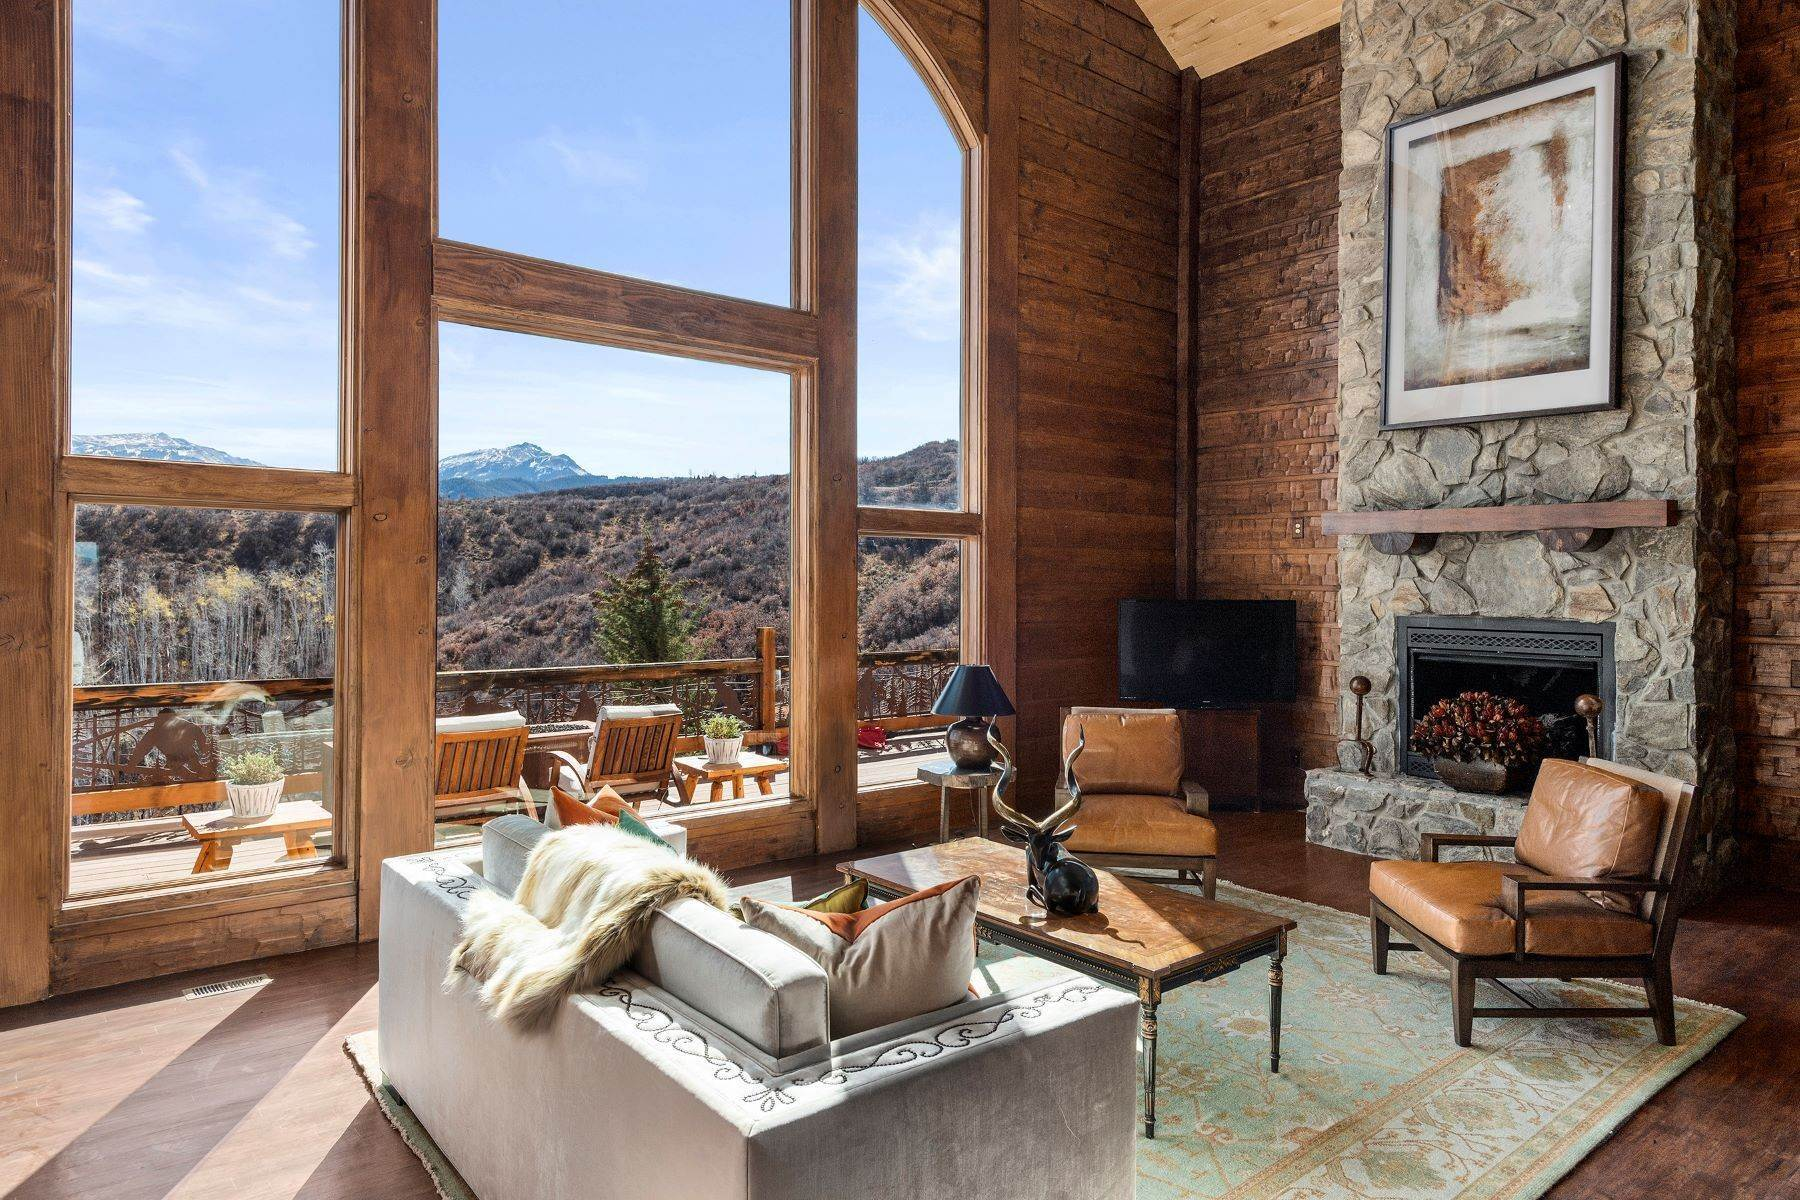 Single Family Homes for Sale at Old Snowmass - 49 acres of Solitude 343 Monastery Cutoff Road Snowmass, Colorado 81654 United States